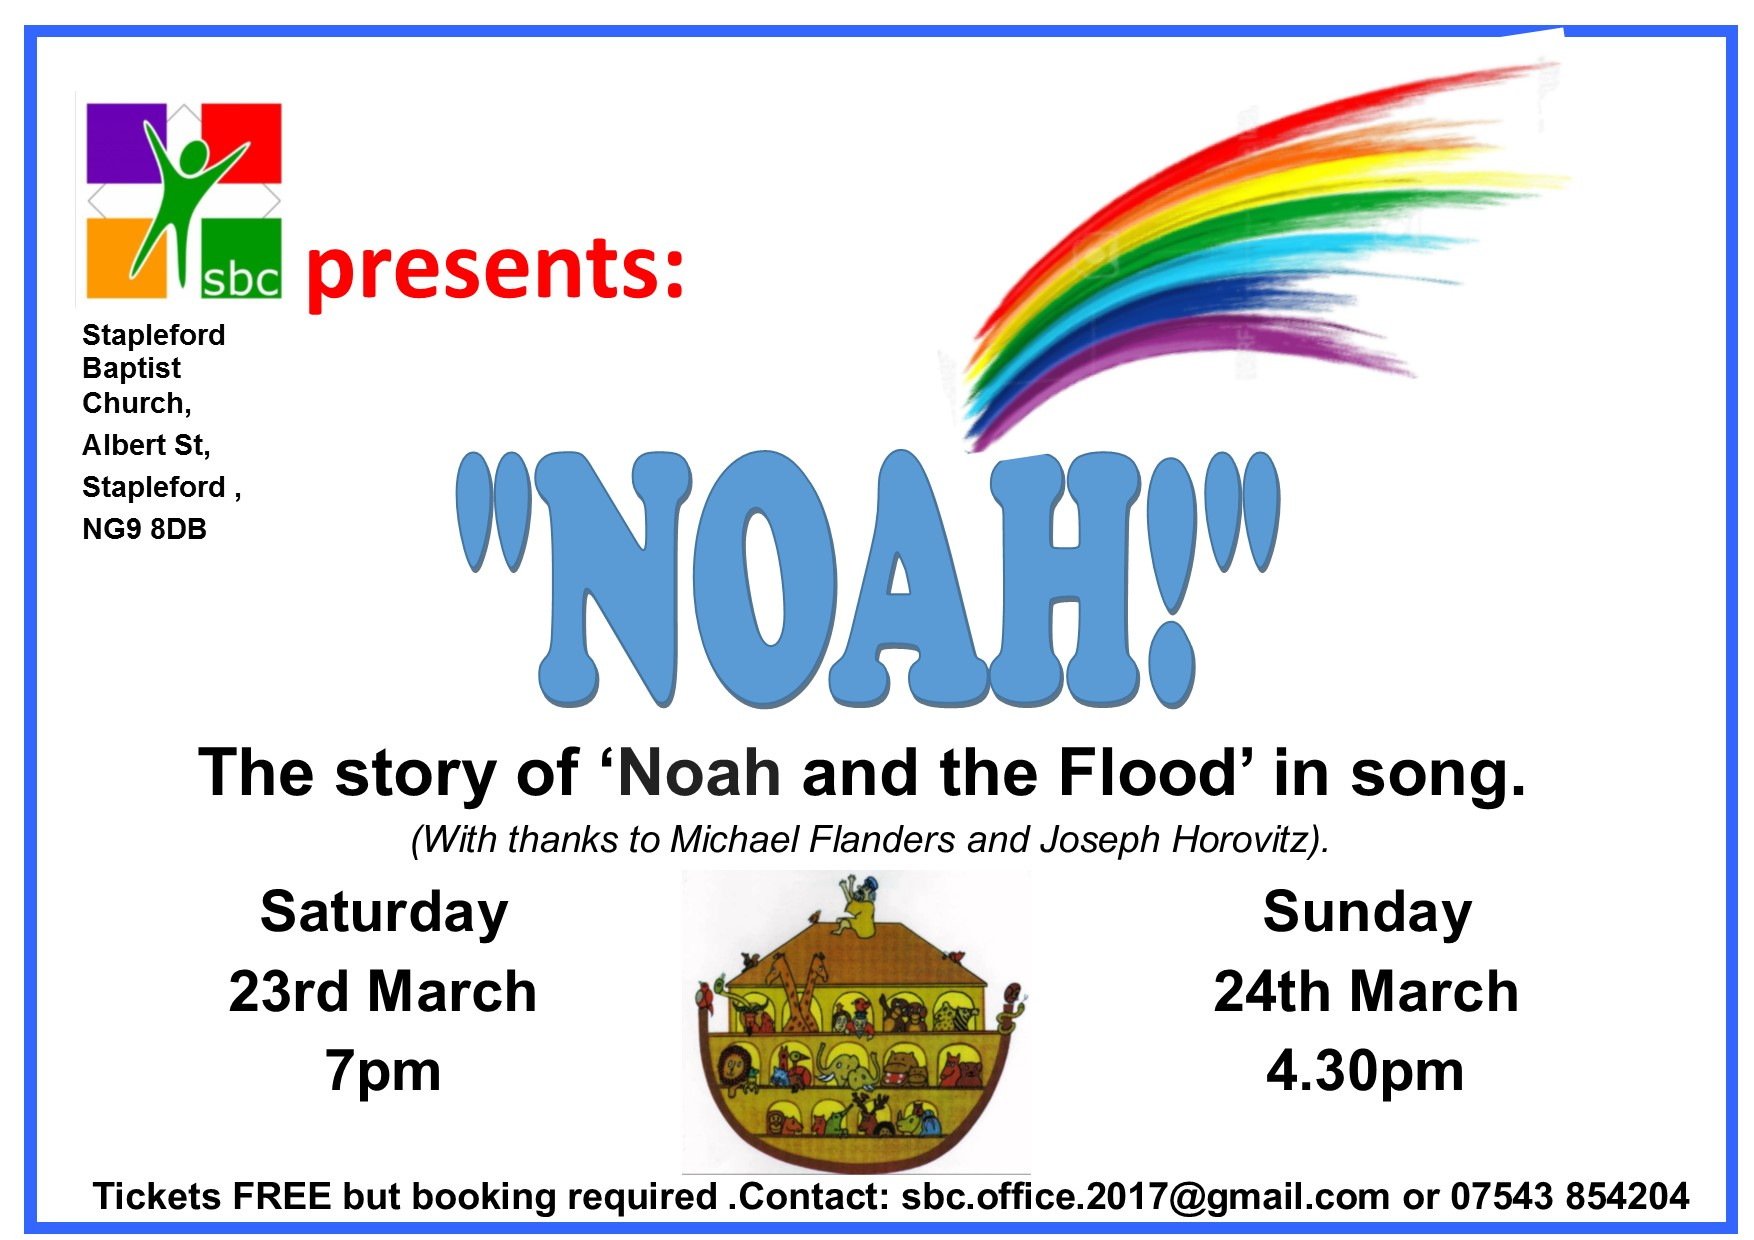 NOAH! The story of Noah and the ark in song . event.